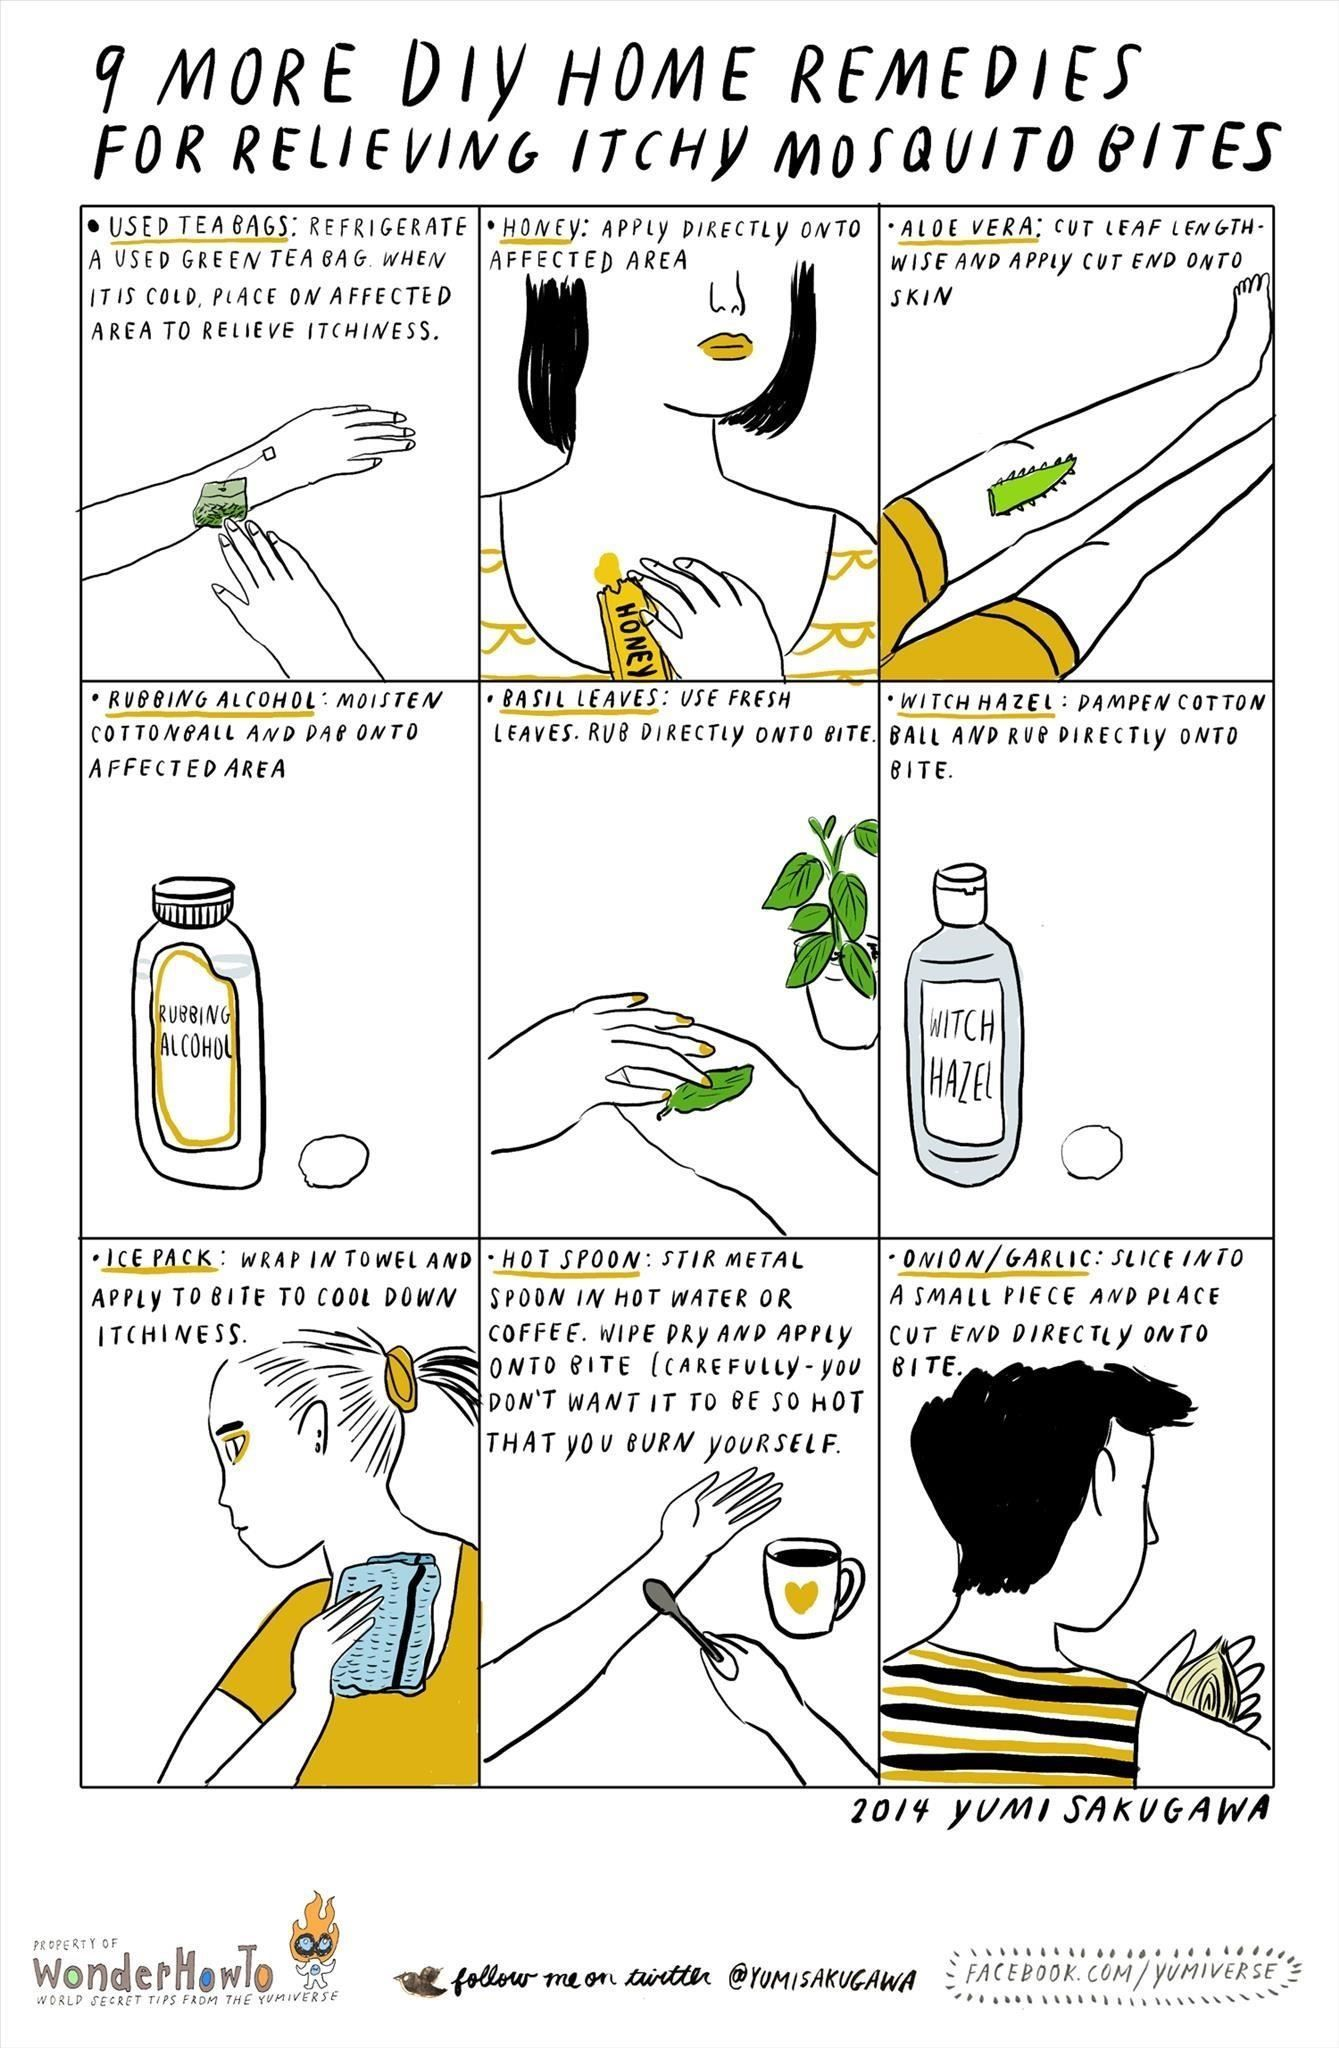 How To: 9 More DIY Home Remedies for Relieving Itchy